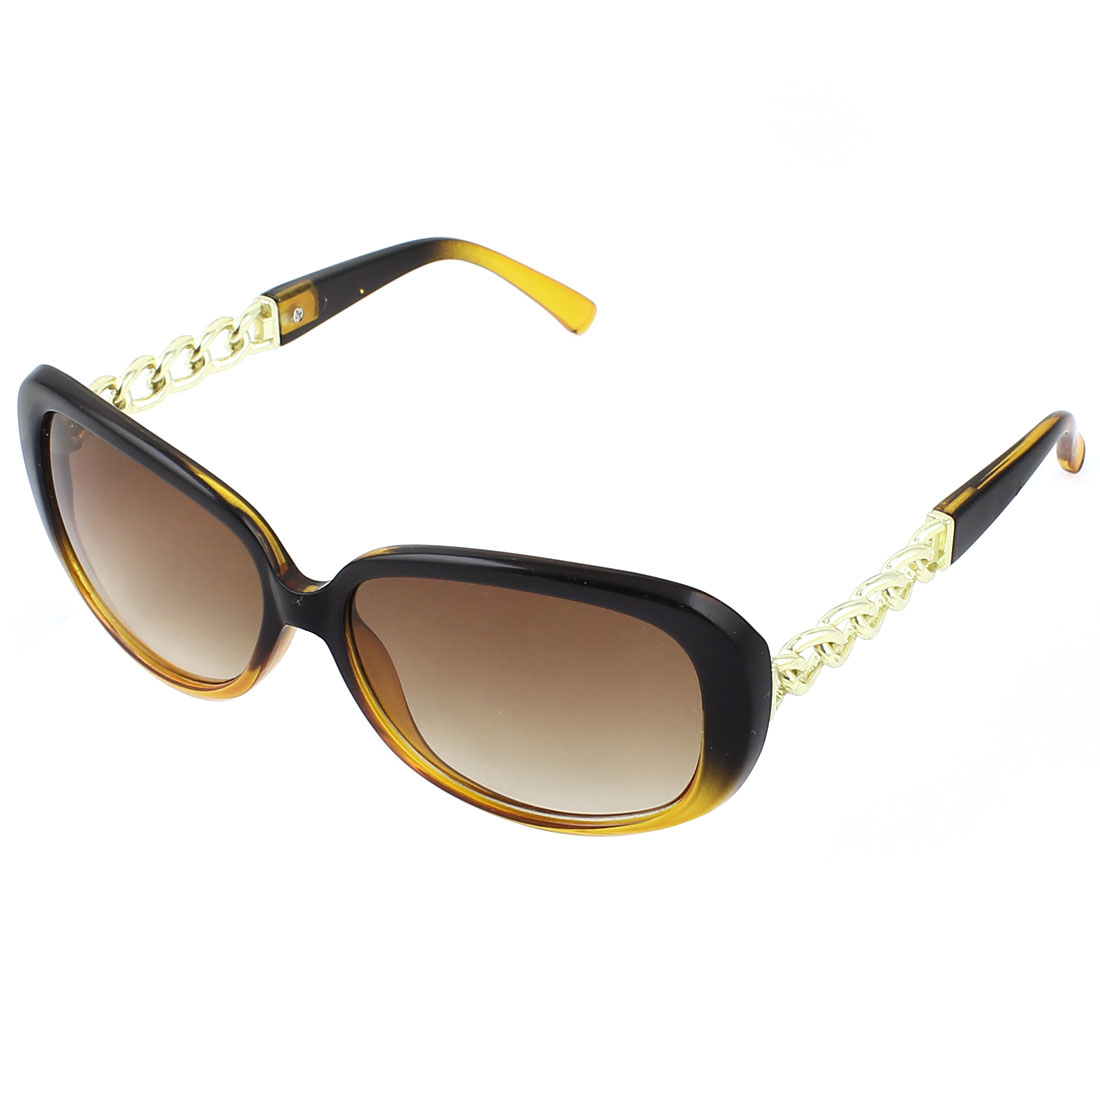 Woman Plastic Metal Chain Detail Arm Full Rim Square Lens Sunglasses Brown